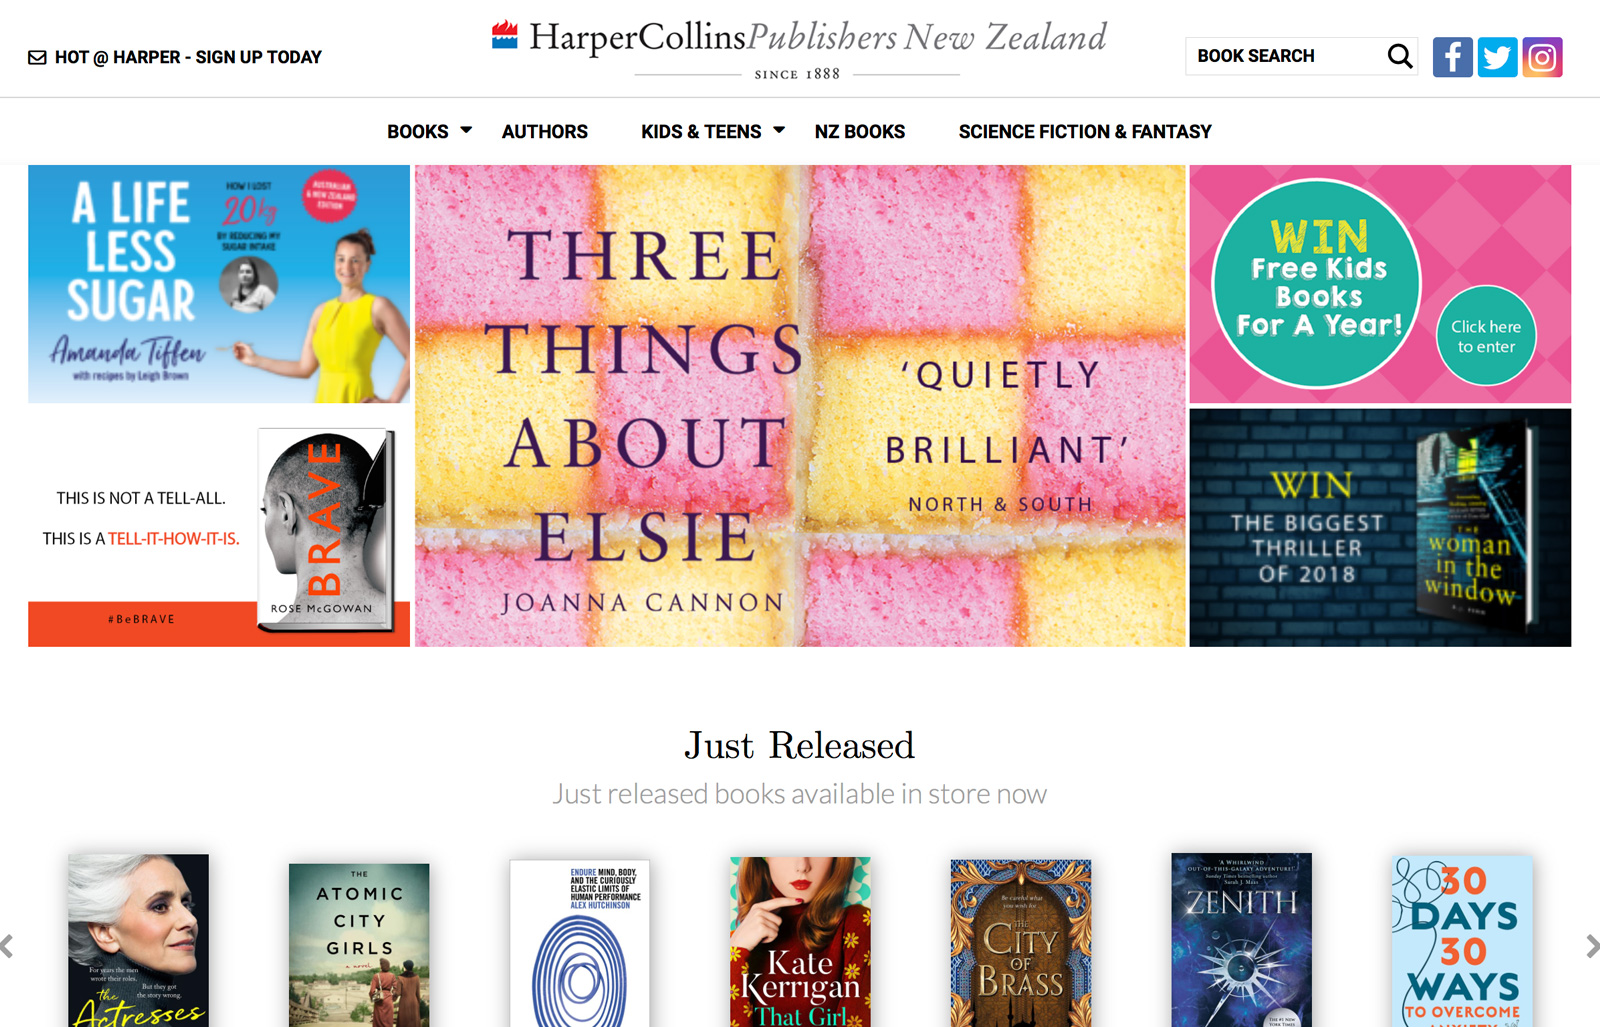 HarperCollins New Zealand launches new site using market leader Supadu